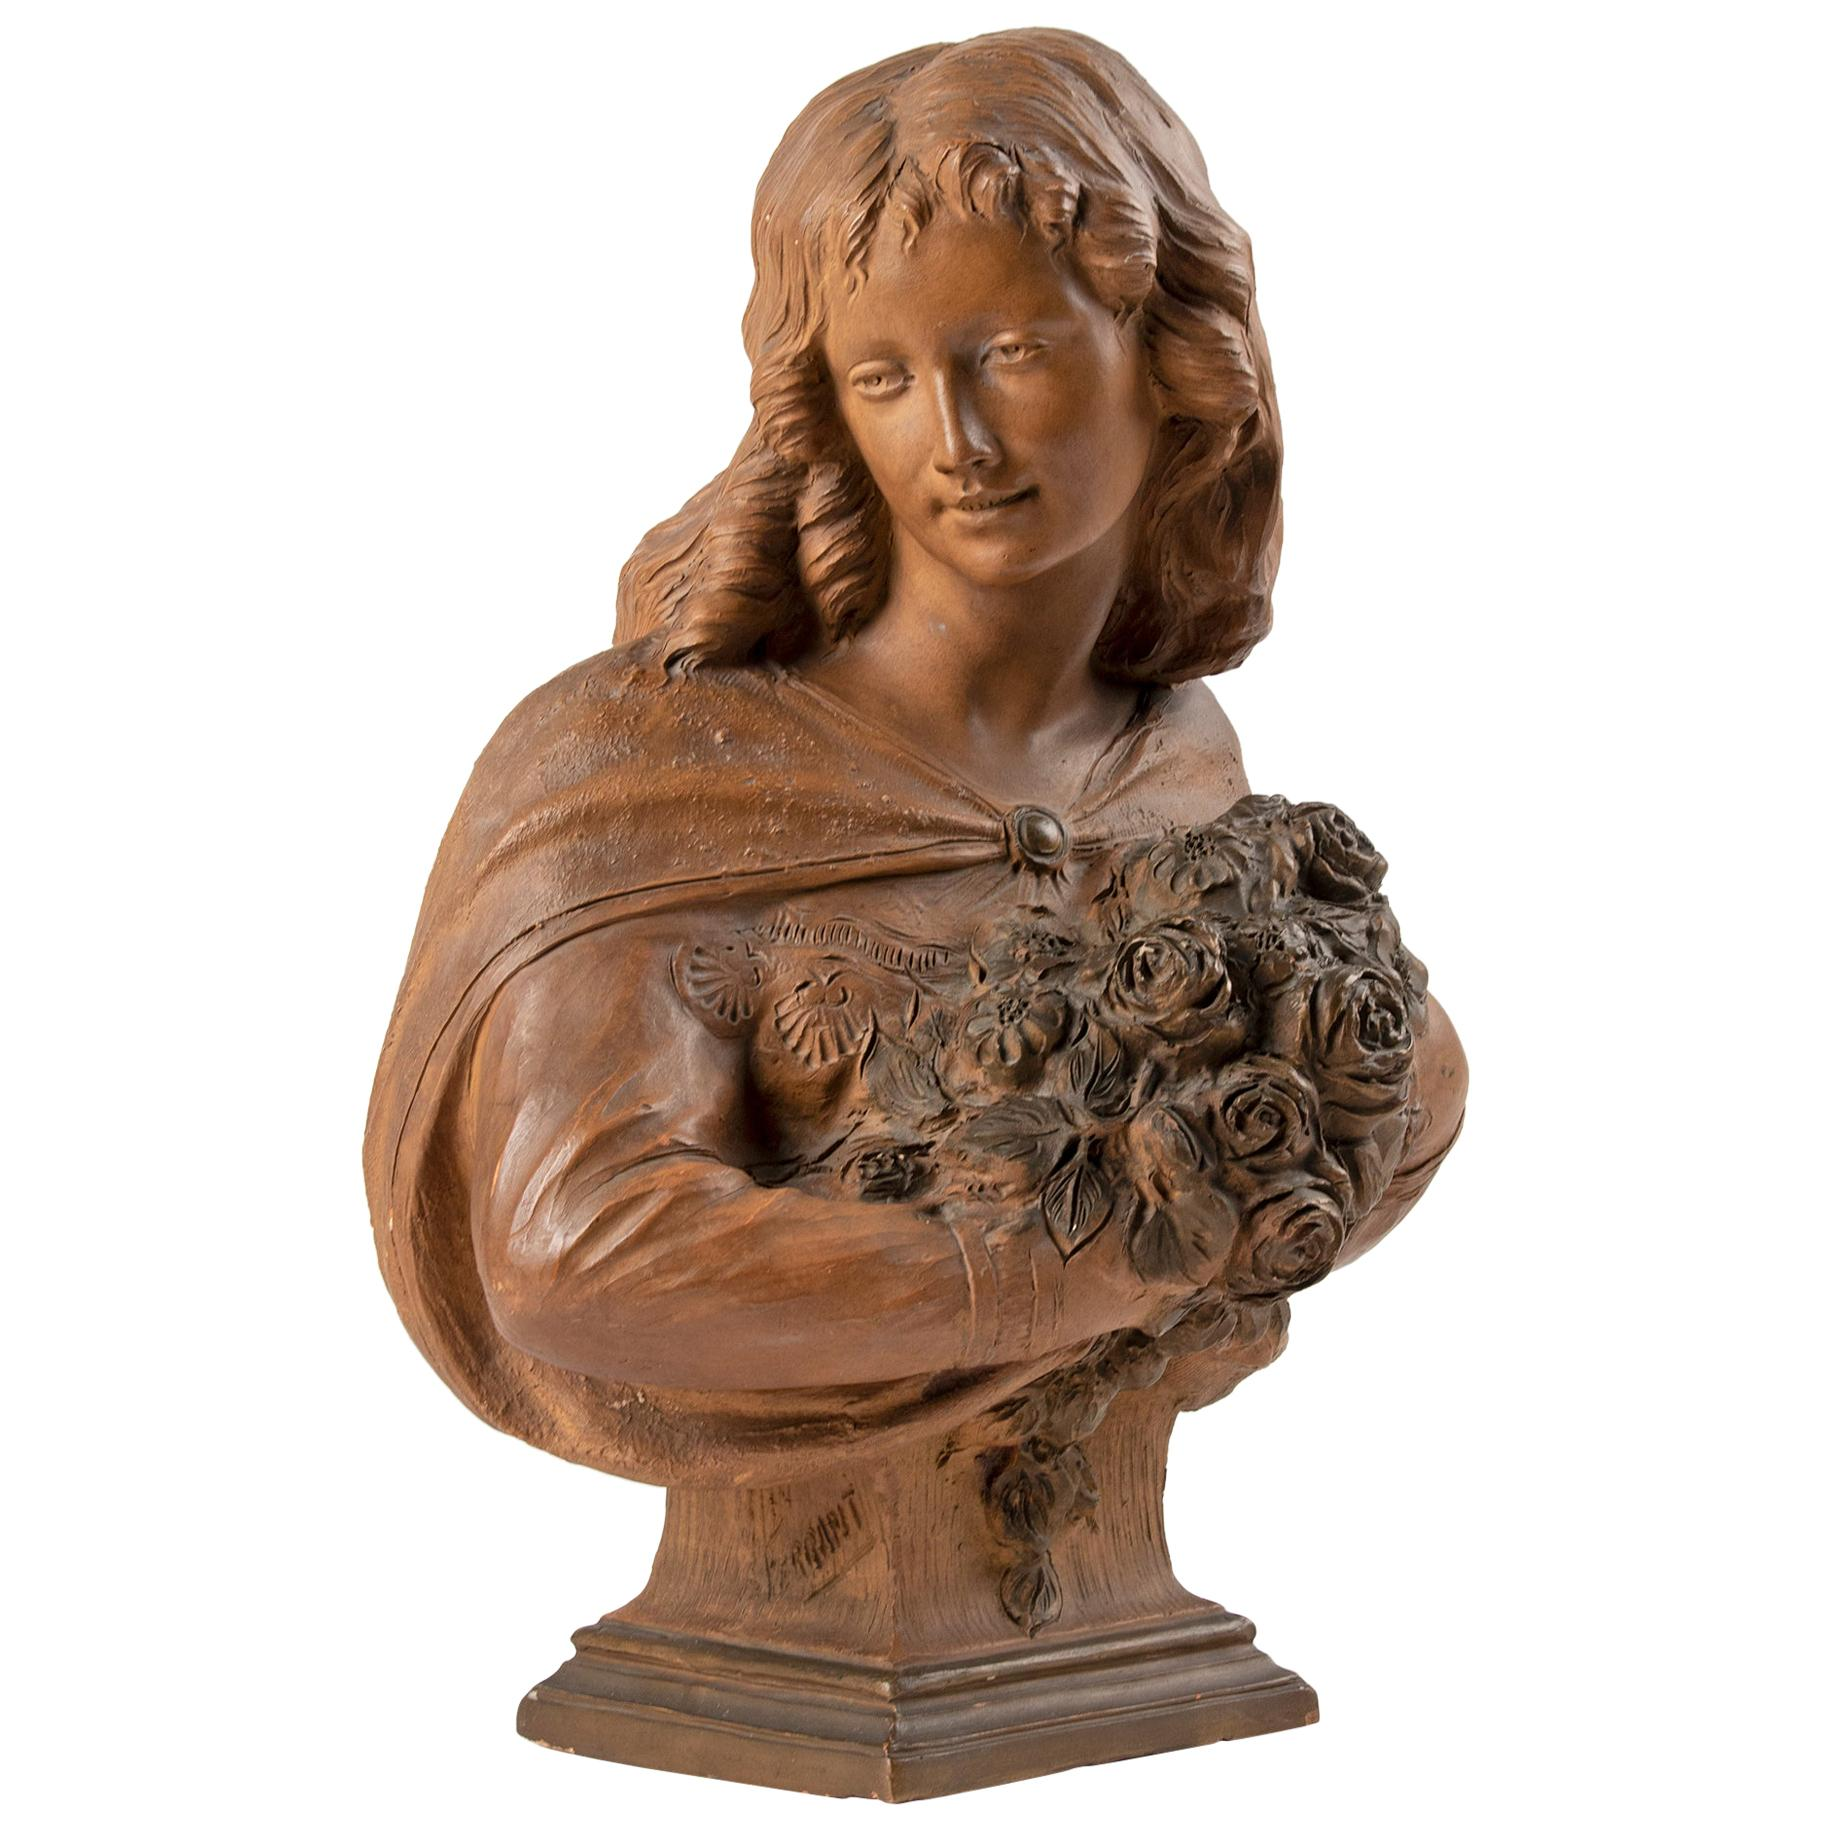 19th Century French Terracotta Statue of a Flower Girl by Ferrant